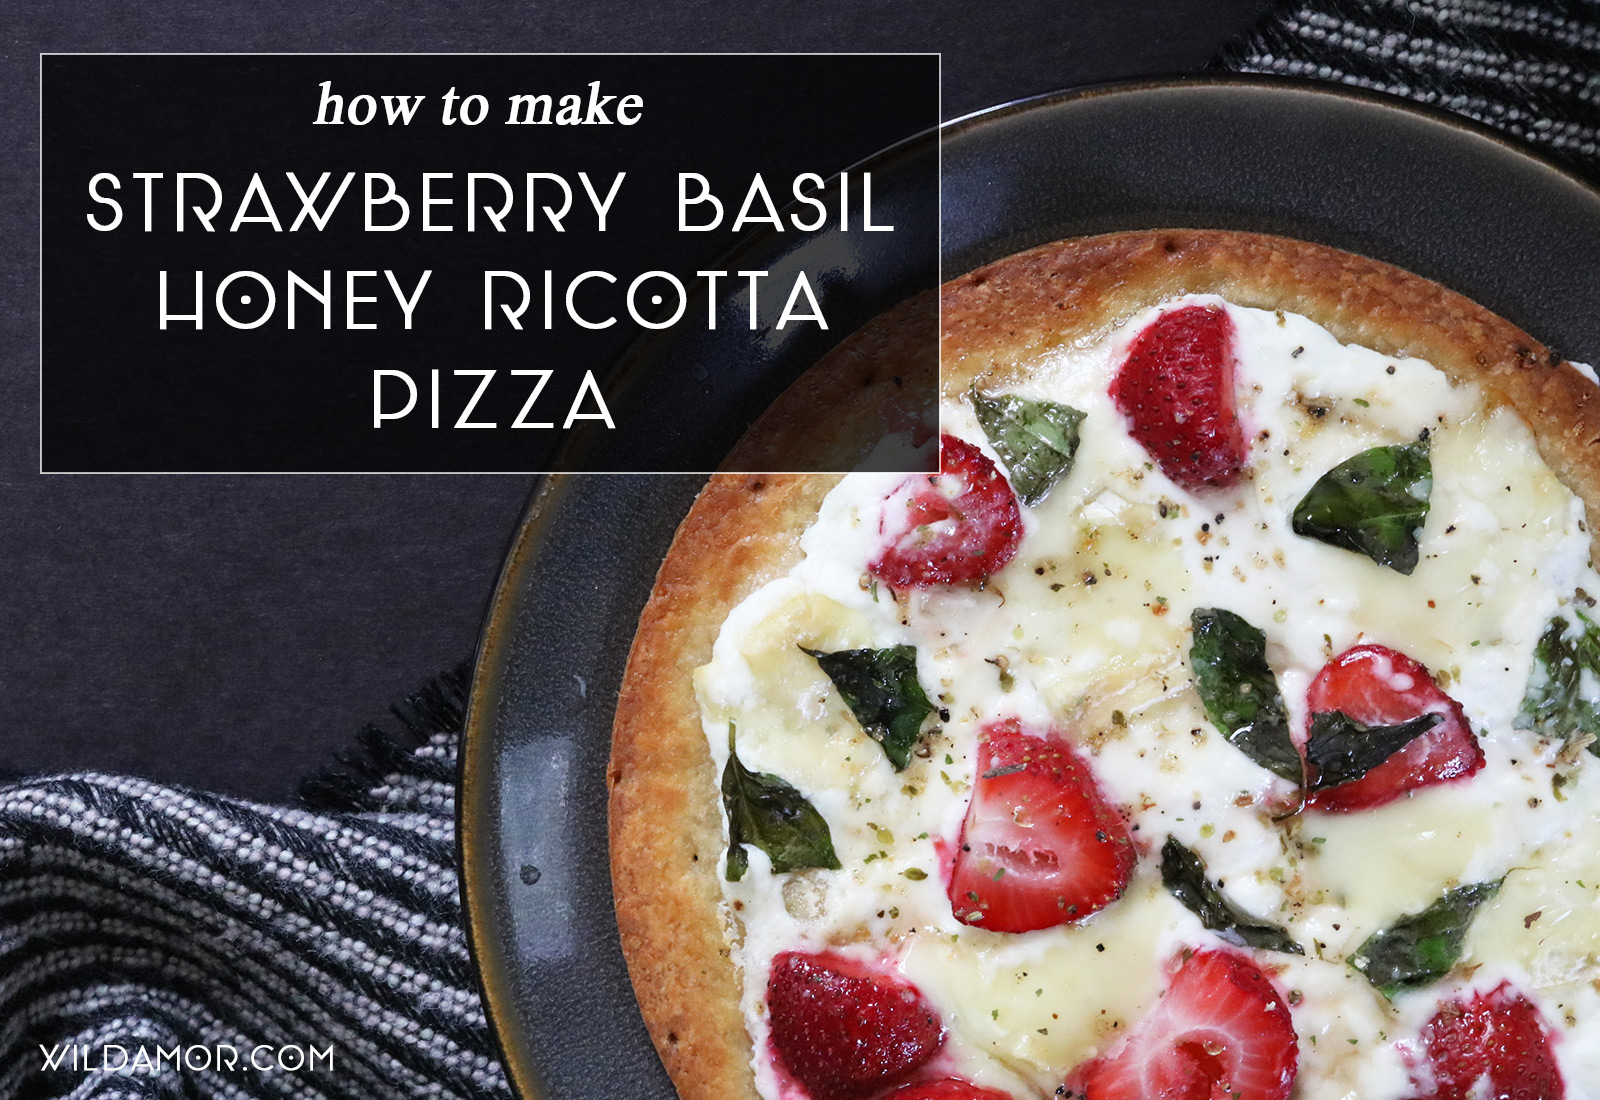 Strawberry Basil Ricotta Pizza